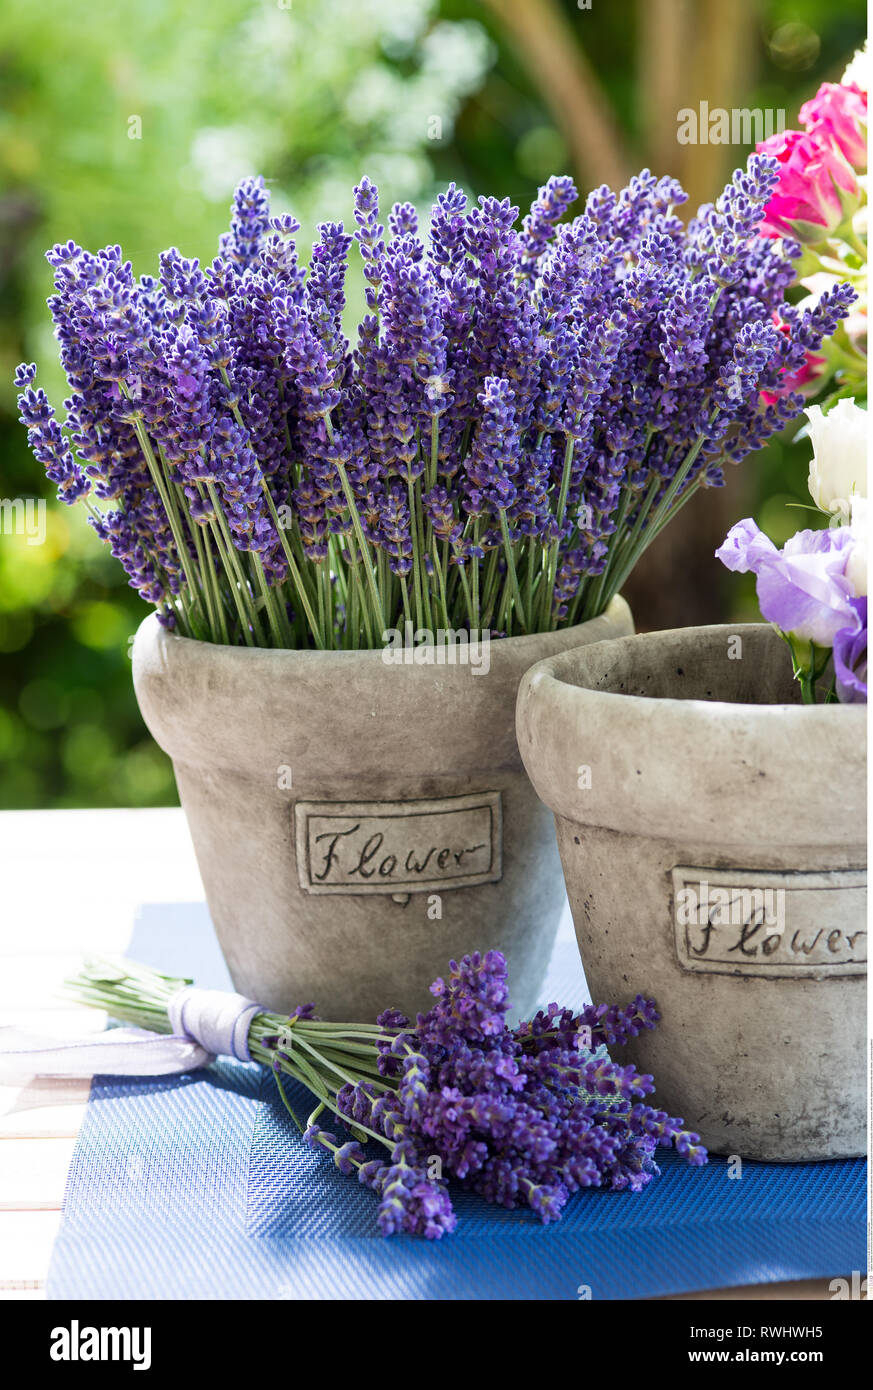 botany, summerly decoration with lavender, Caution! For Greetingcard-Use / Postcard-Use In German Speaking Countries Certain Restrictions May Apply - Stock Image